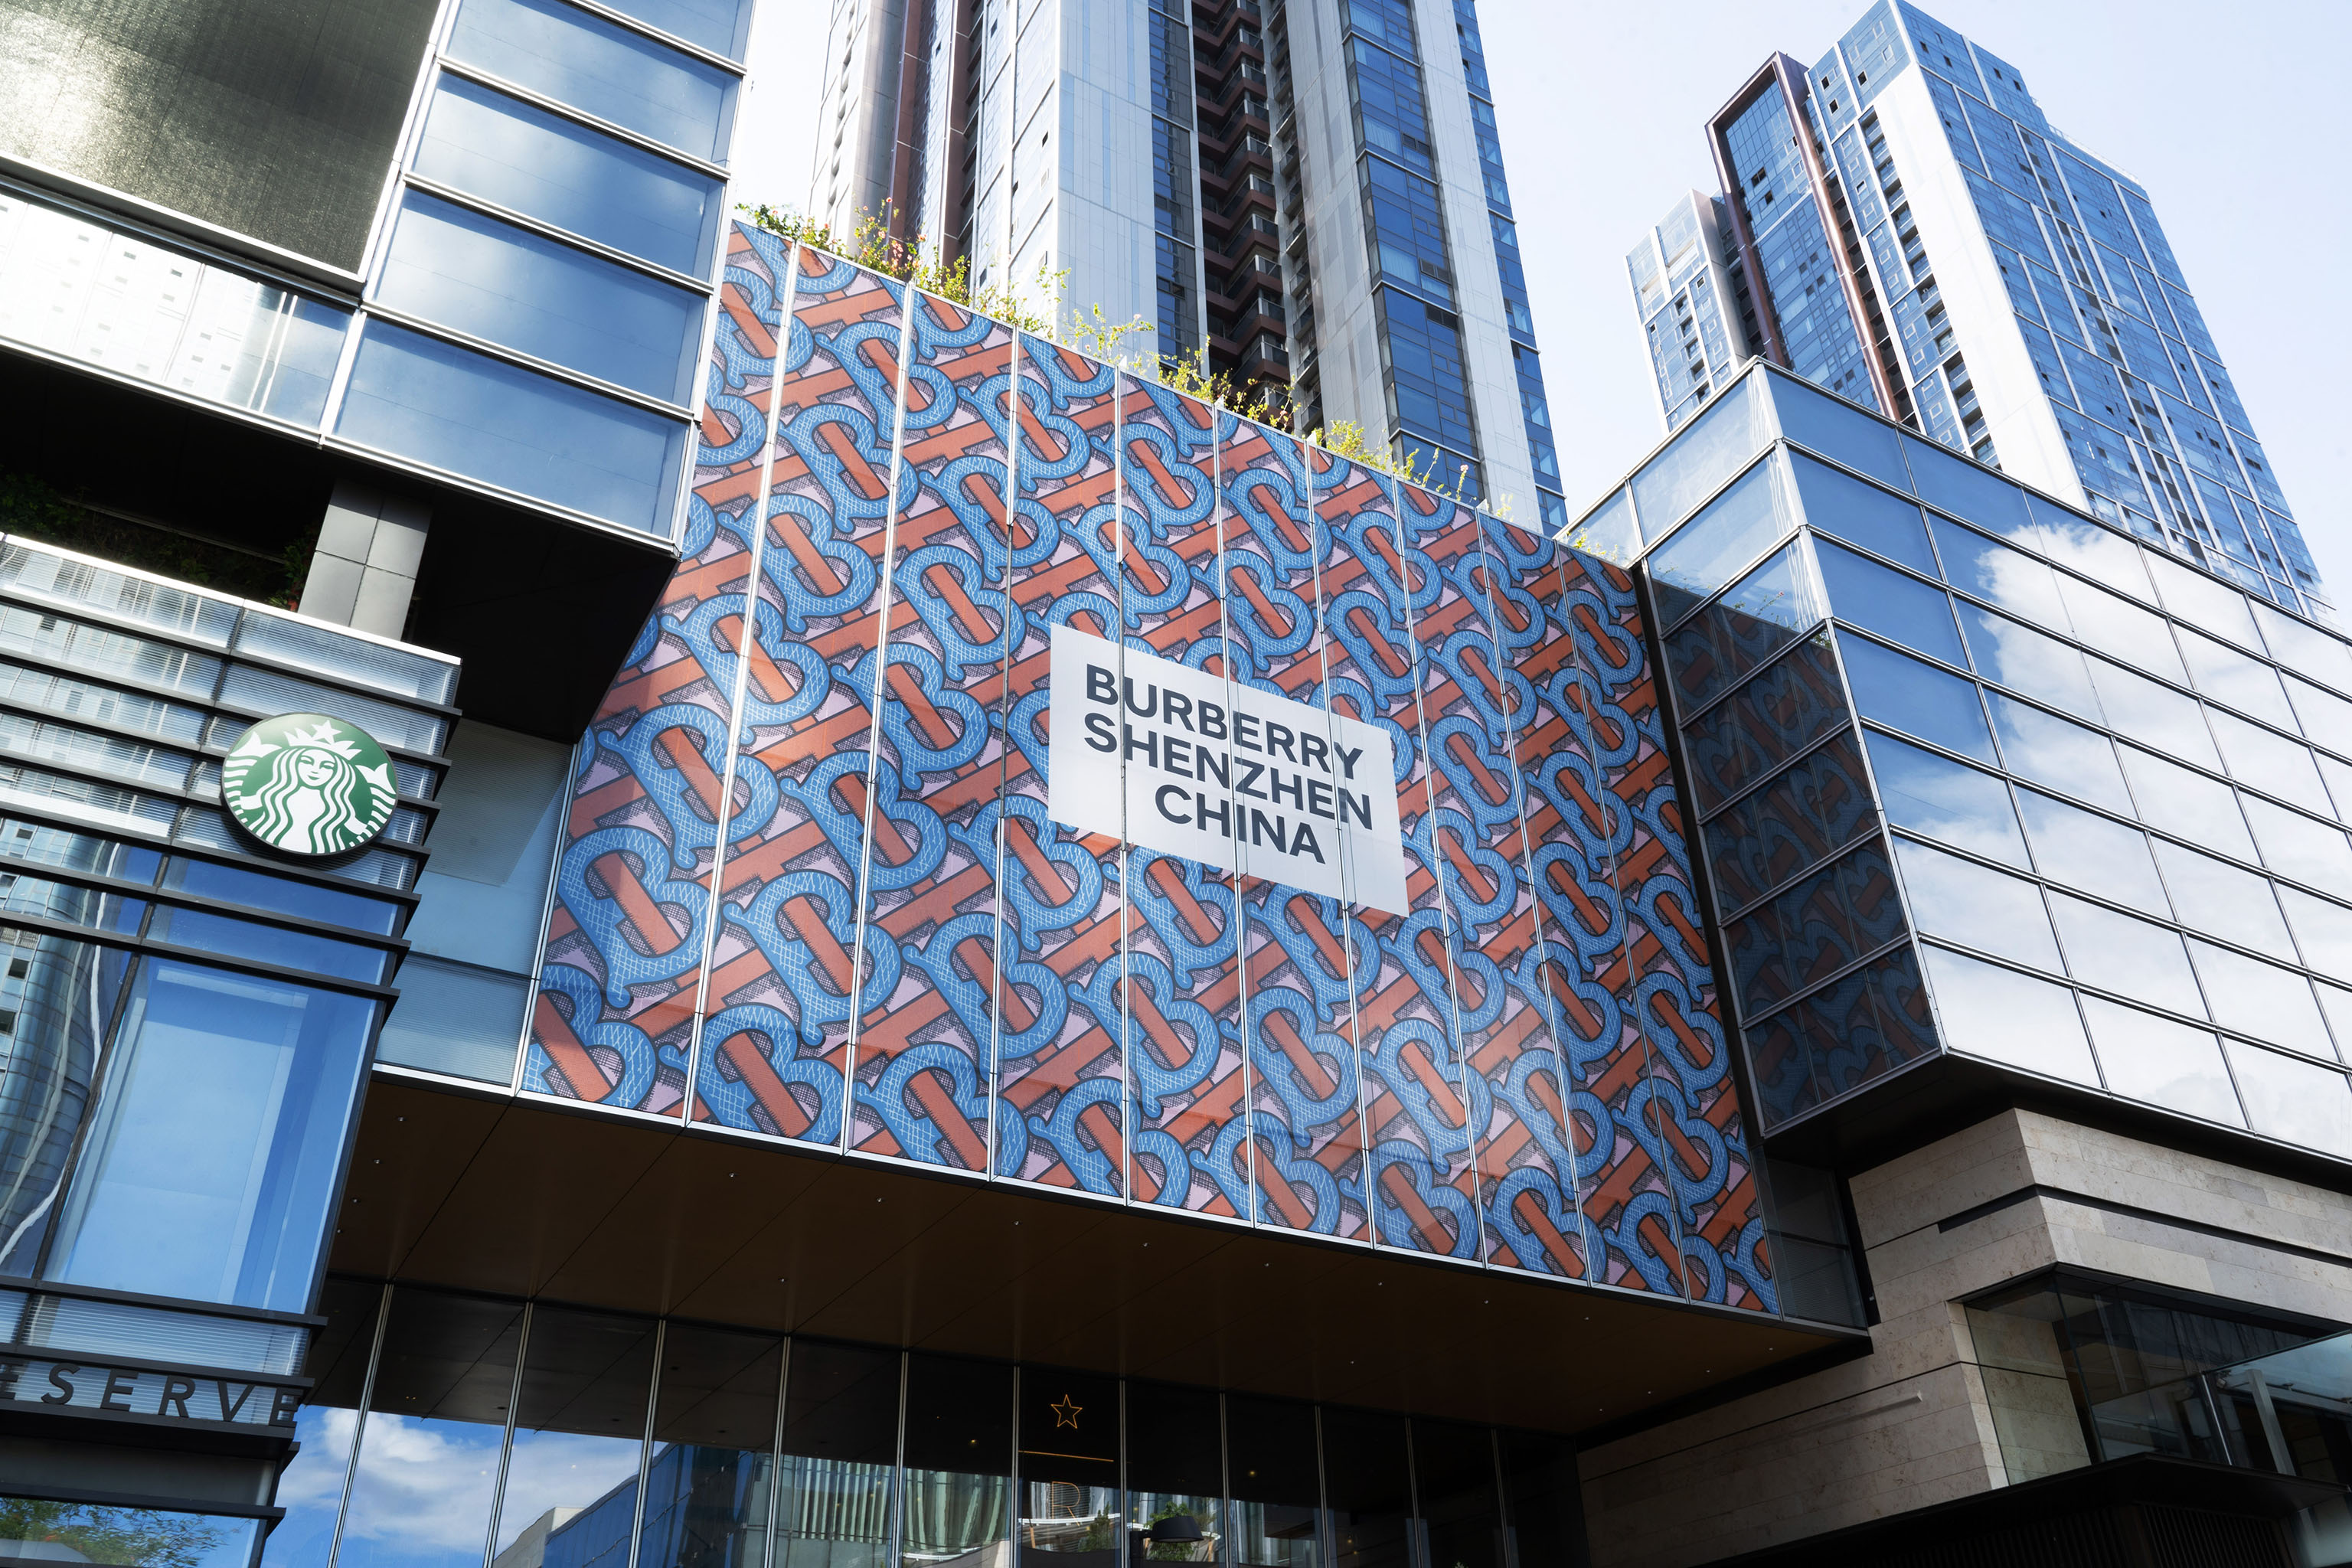 The Burberry store in Shenzhen, China.